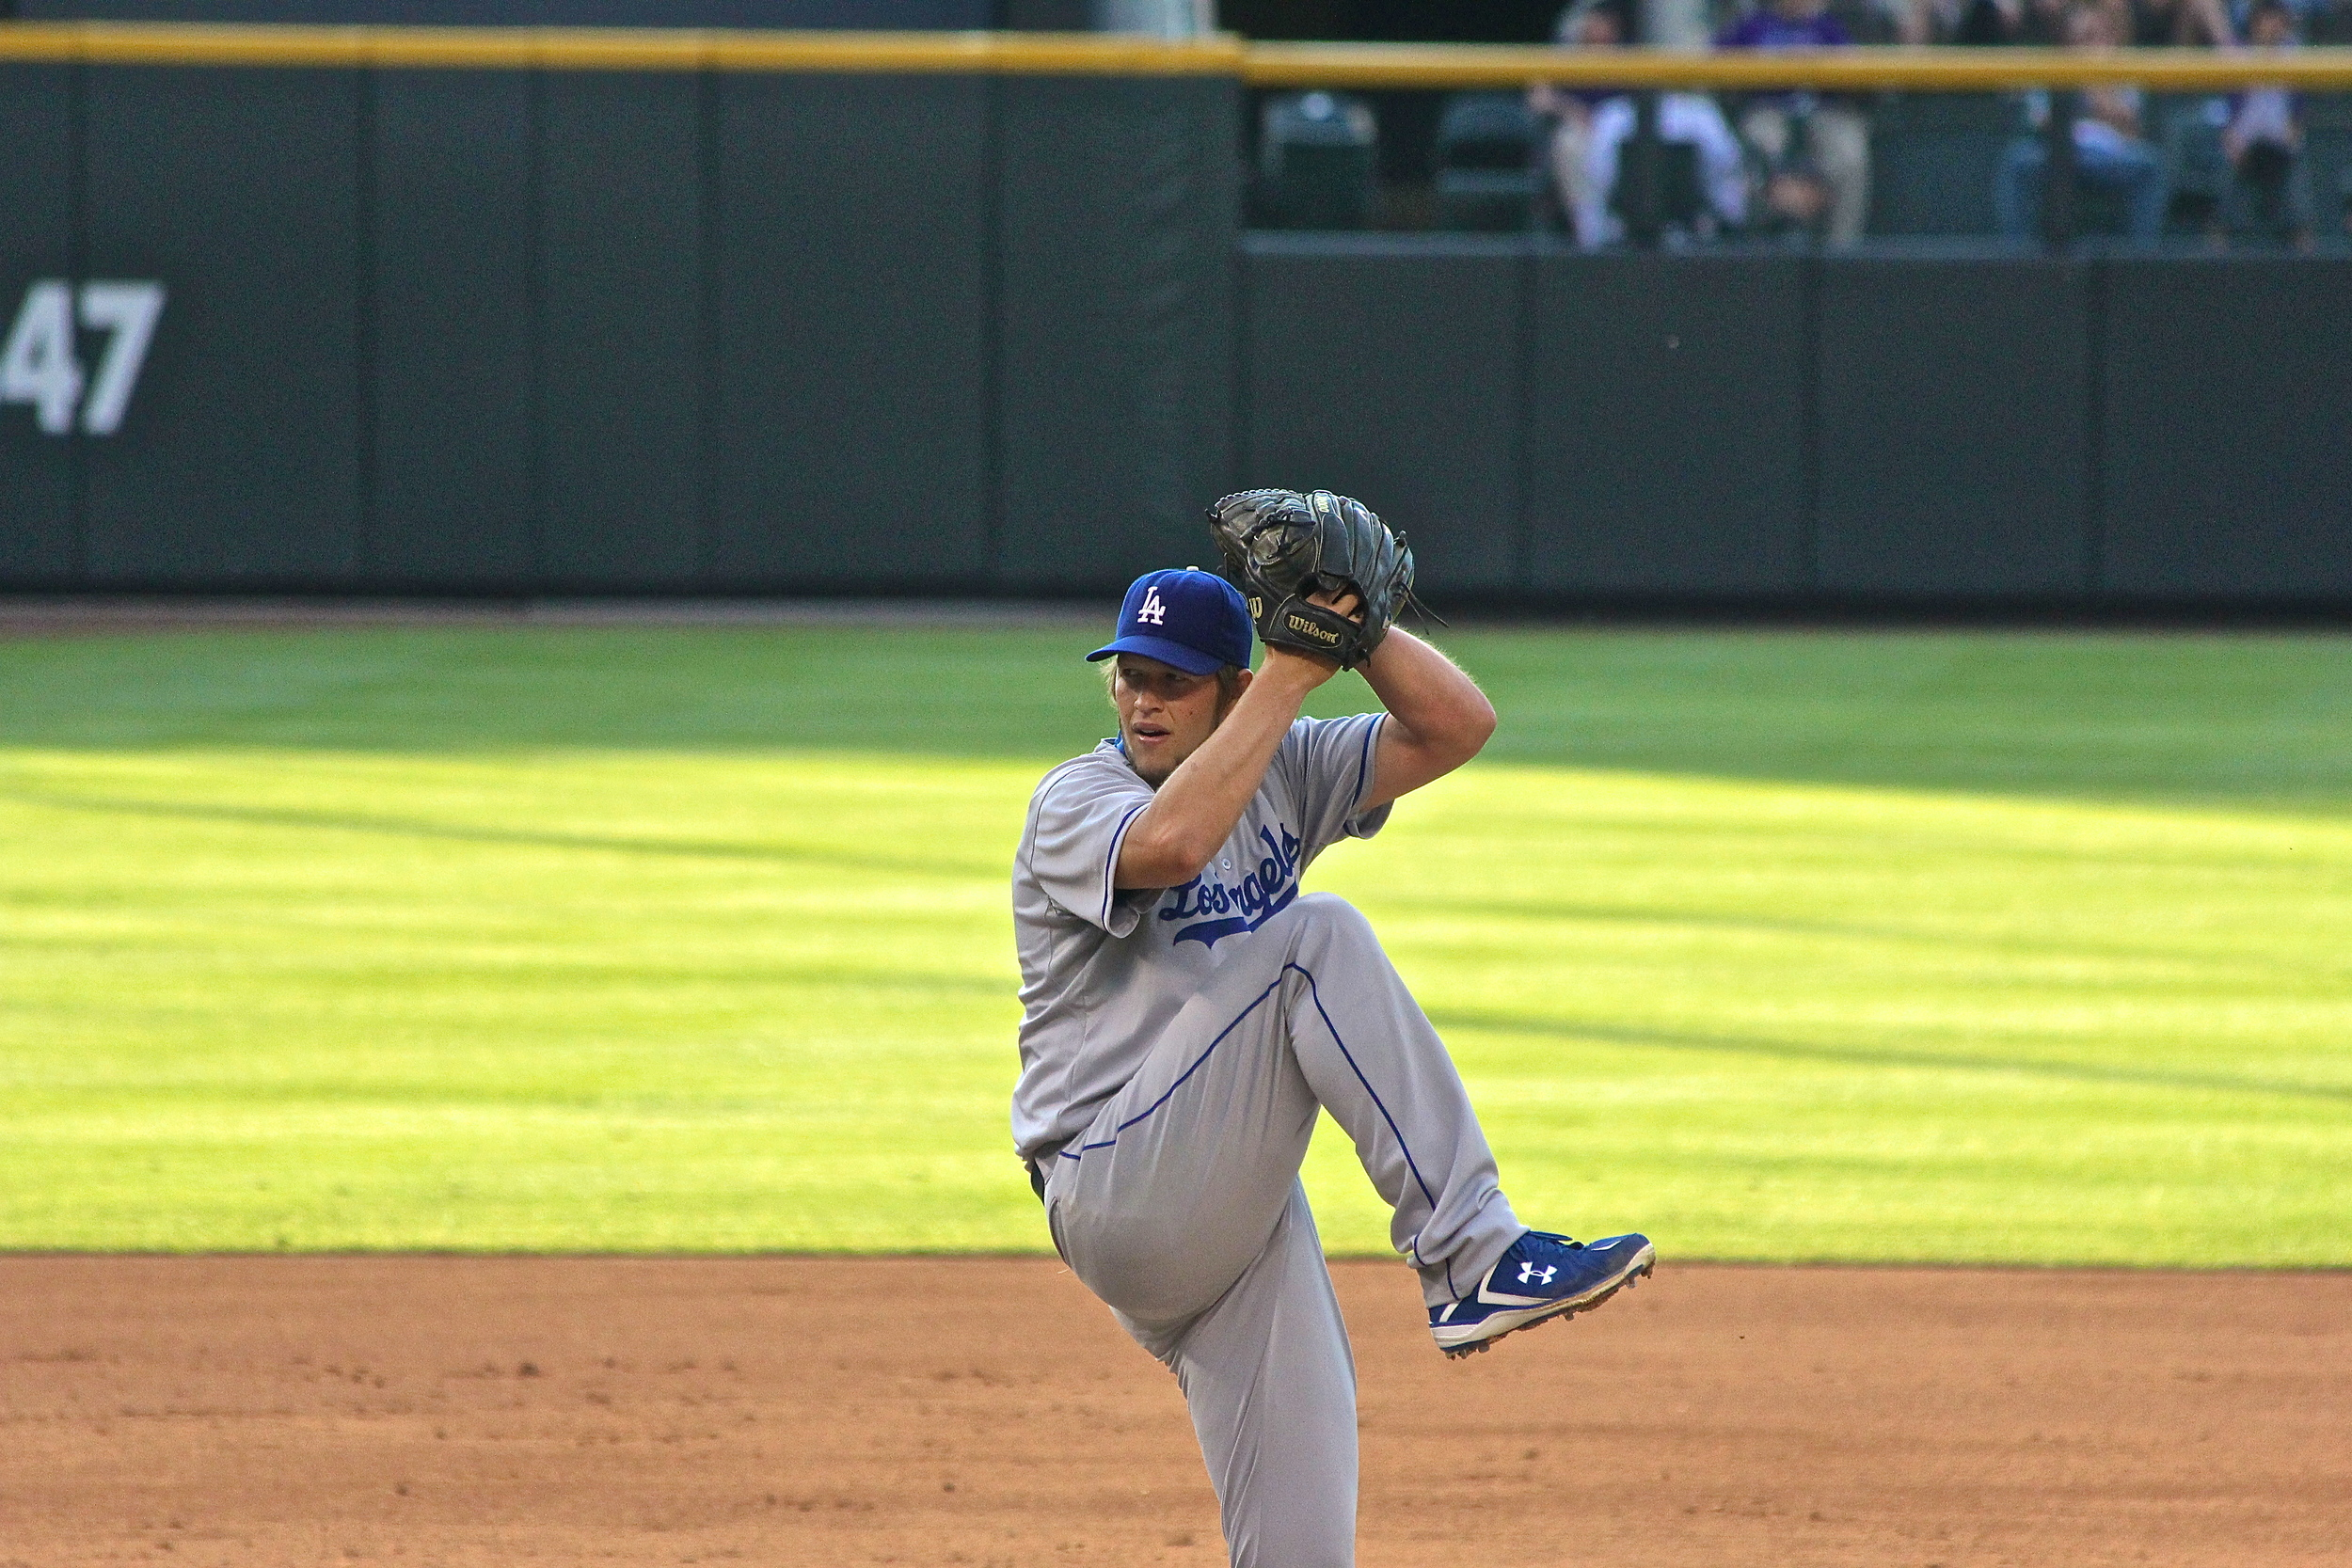 Complete game shutout for Clayton Kershaw